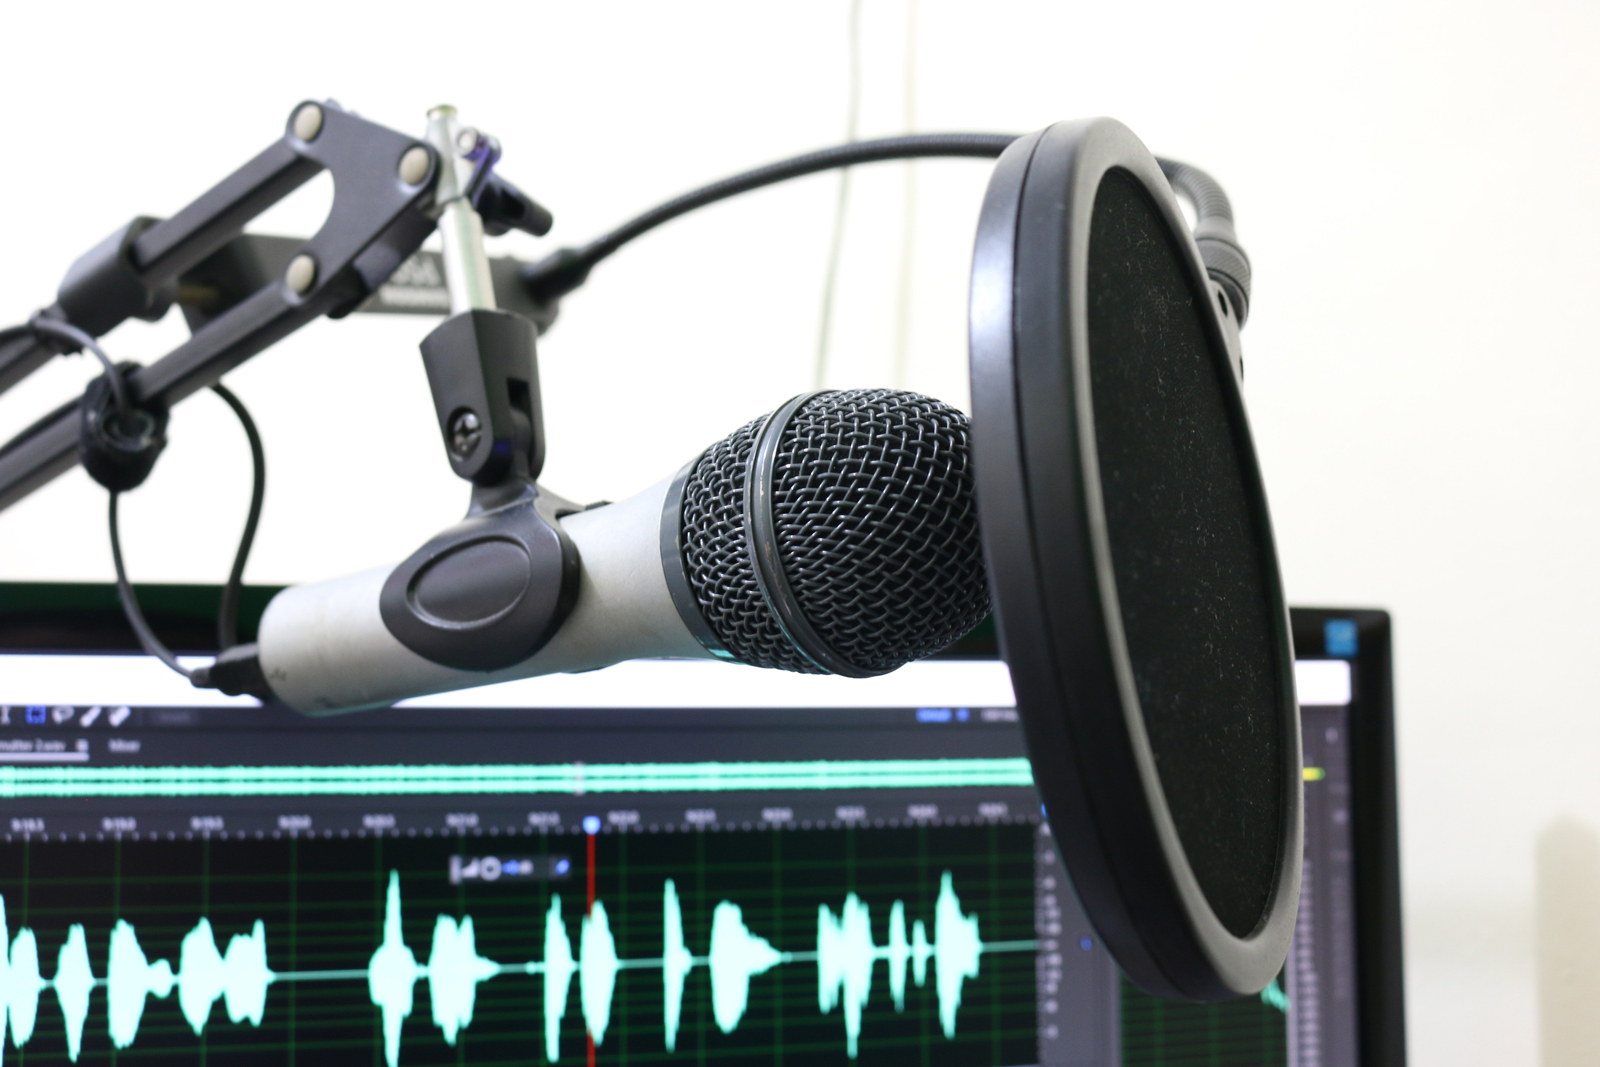 A podcast microphone set up with a screen receiving sound in the background